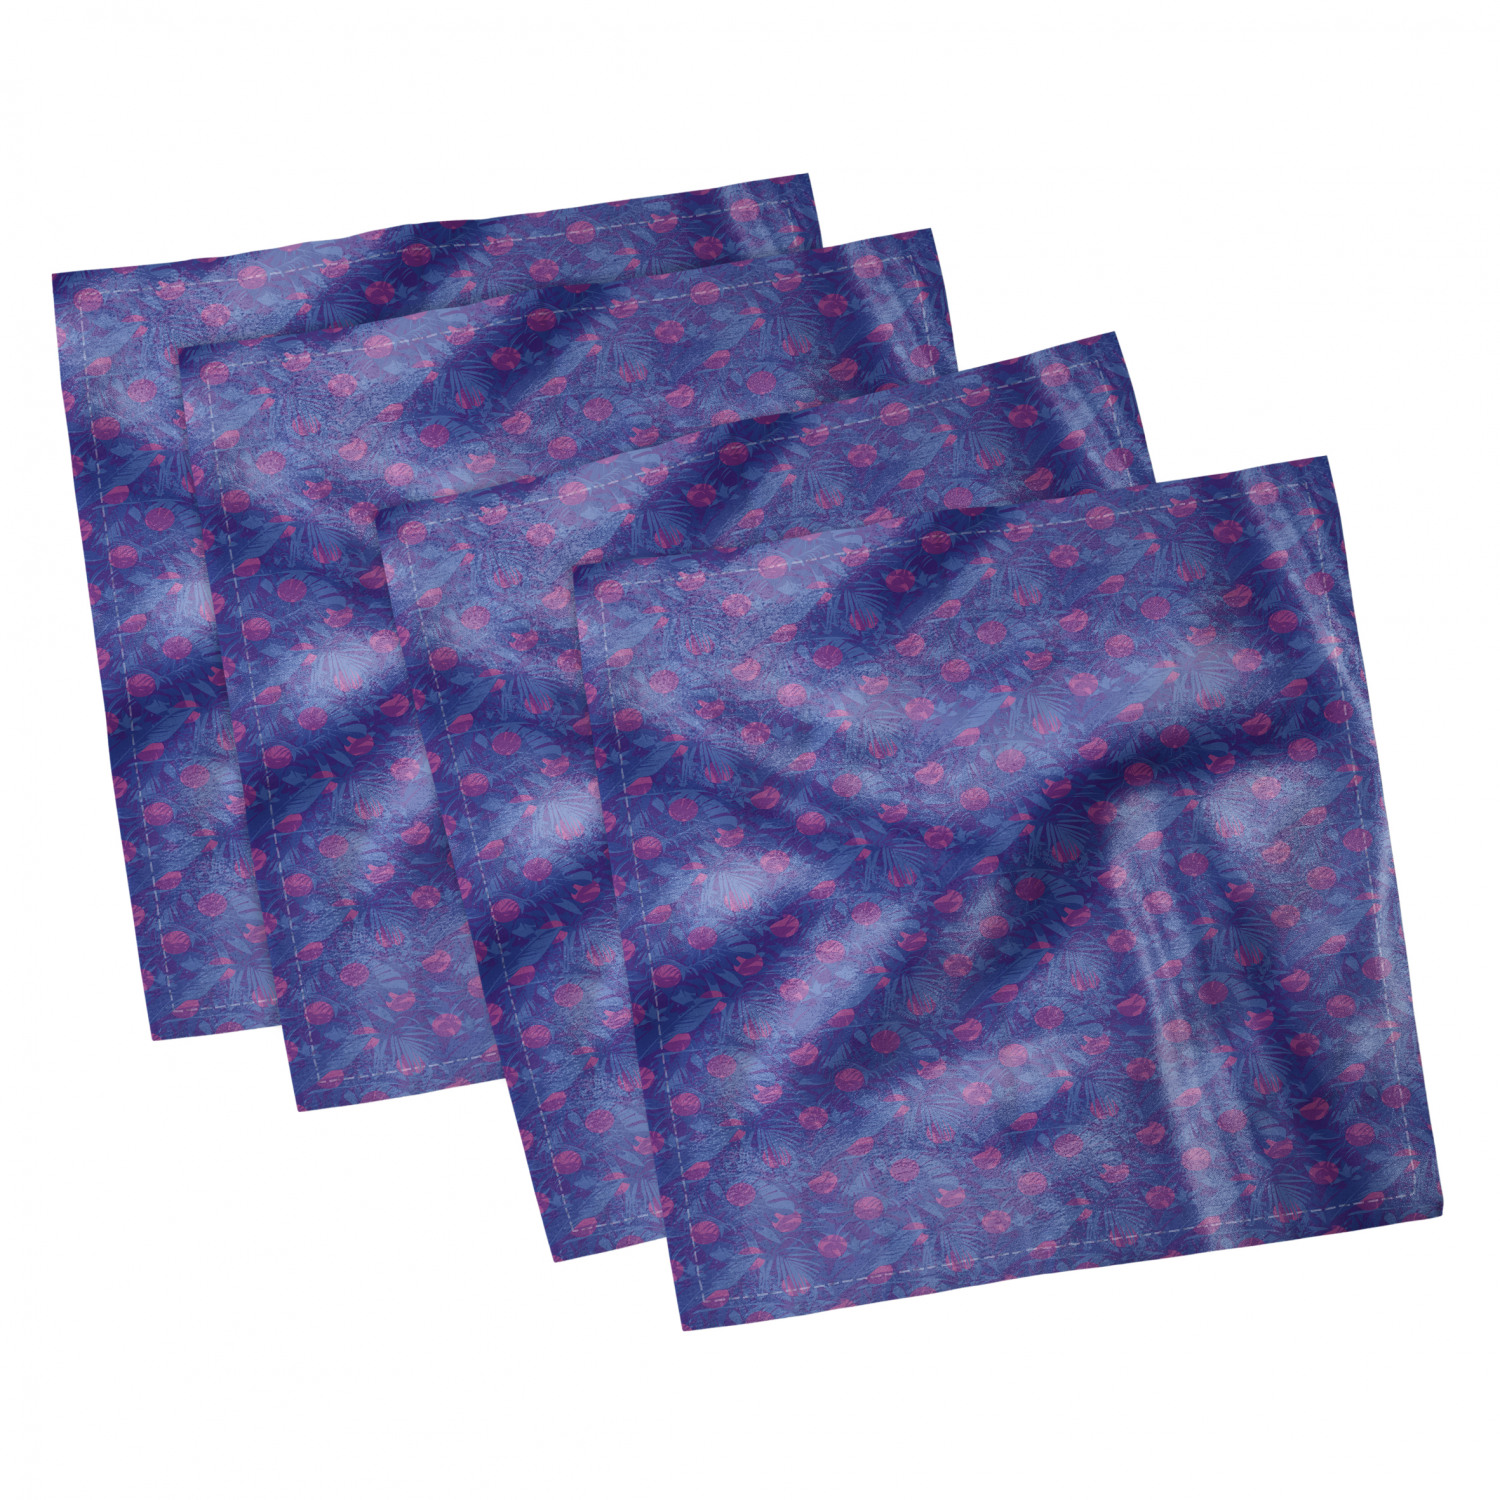 thumbnail 49 - Ambesonne-Leaves-Forest-Decorative-Satin-Napkins-Set-of-4-Party-Dinner-Fabric